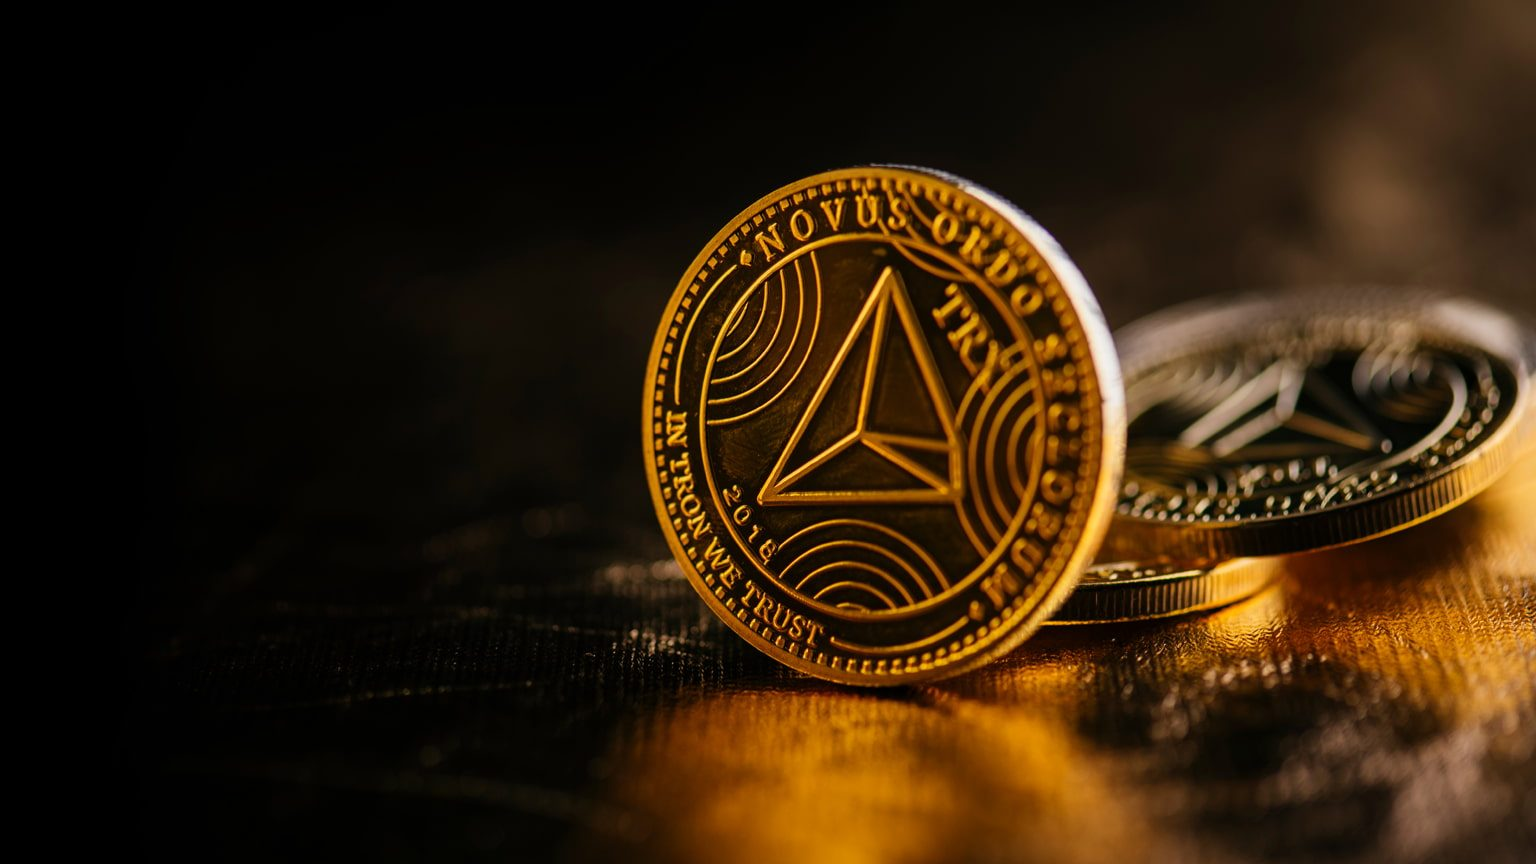 Closeup of golden Tron coin